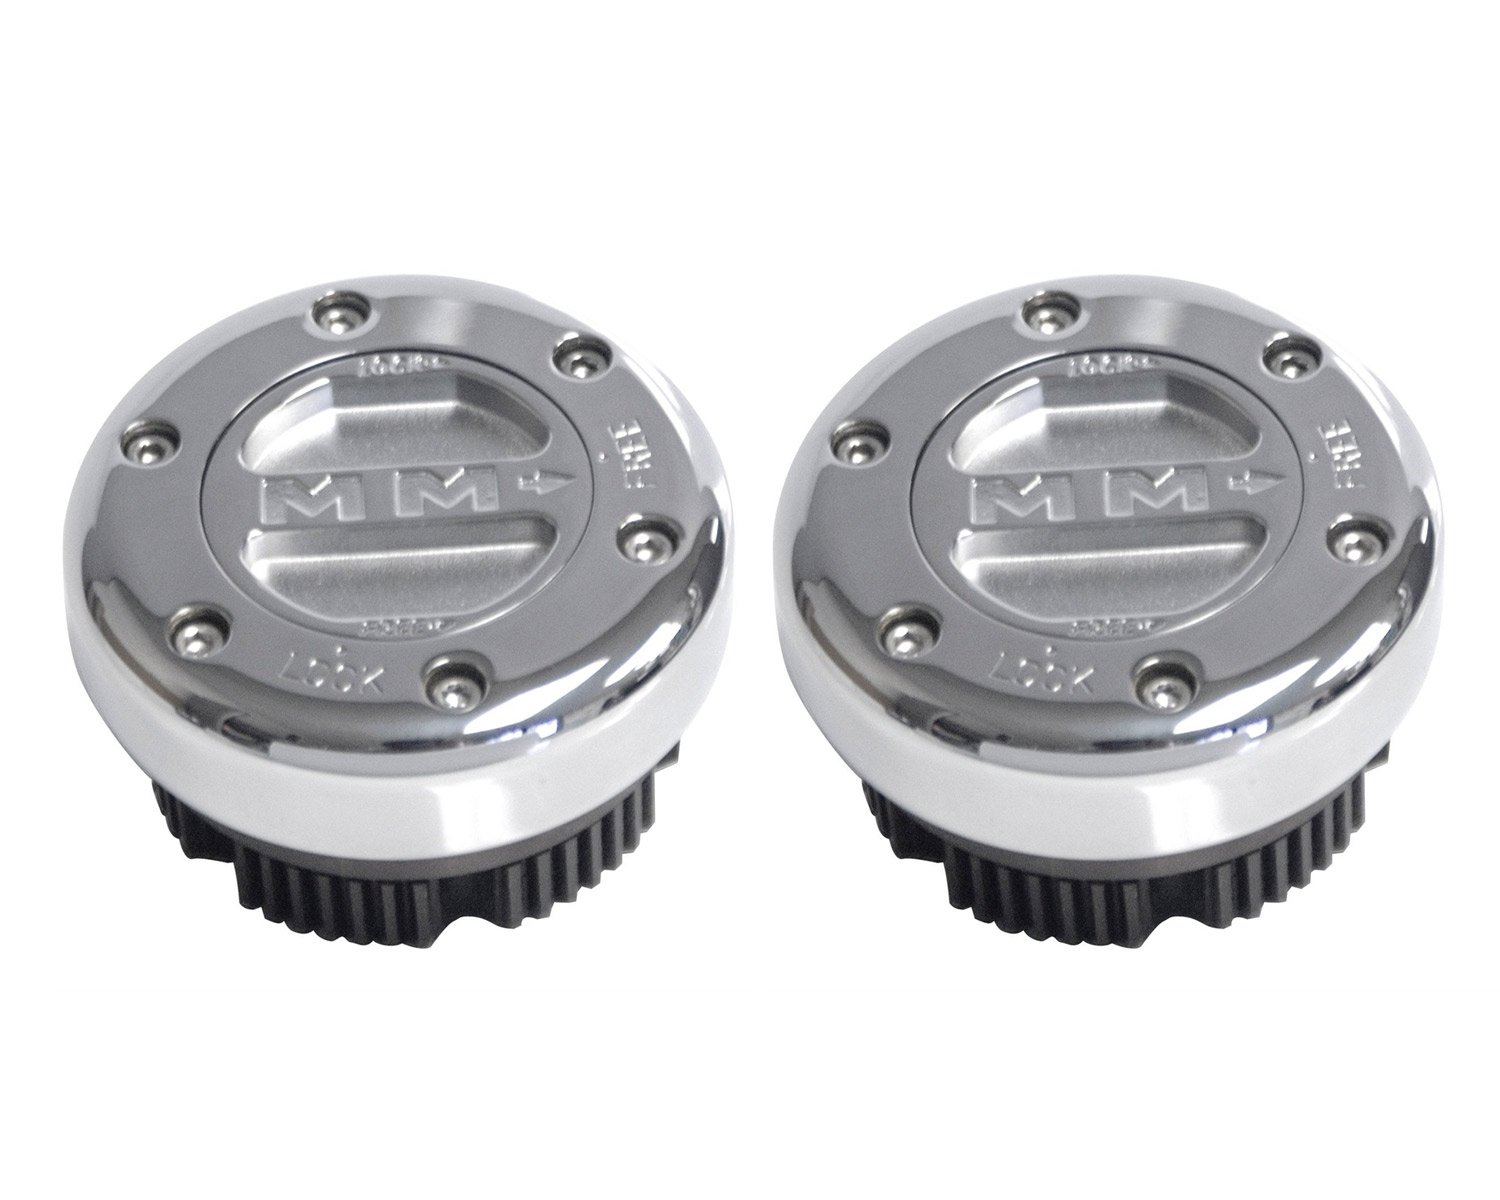 Mile Marker 449S/S Lock Out Hub, 1 Pair by Mile Marker